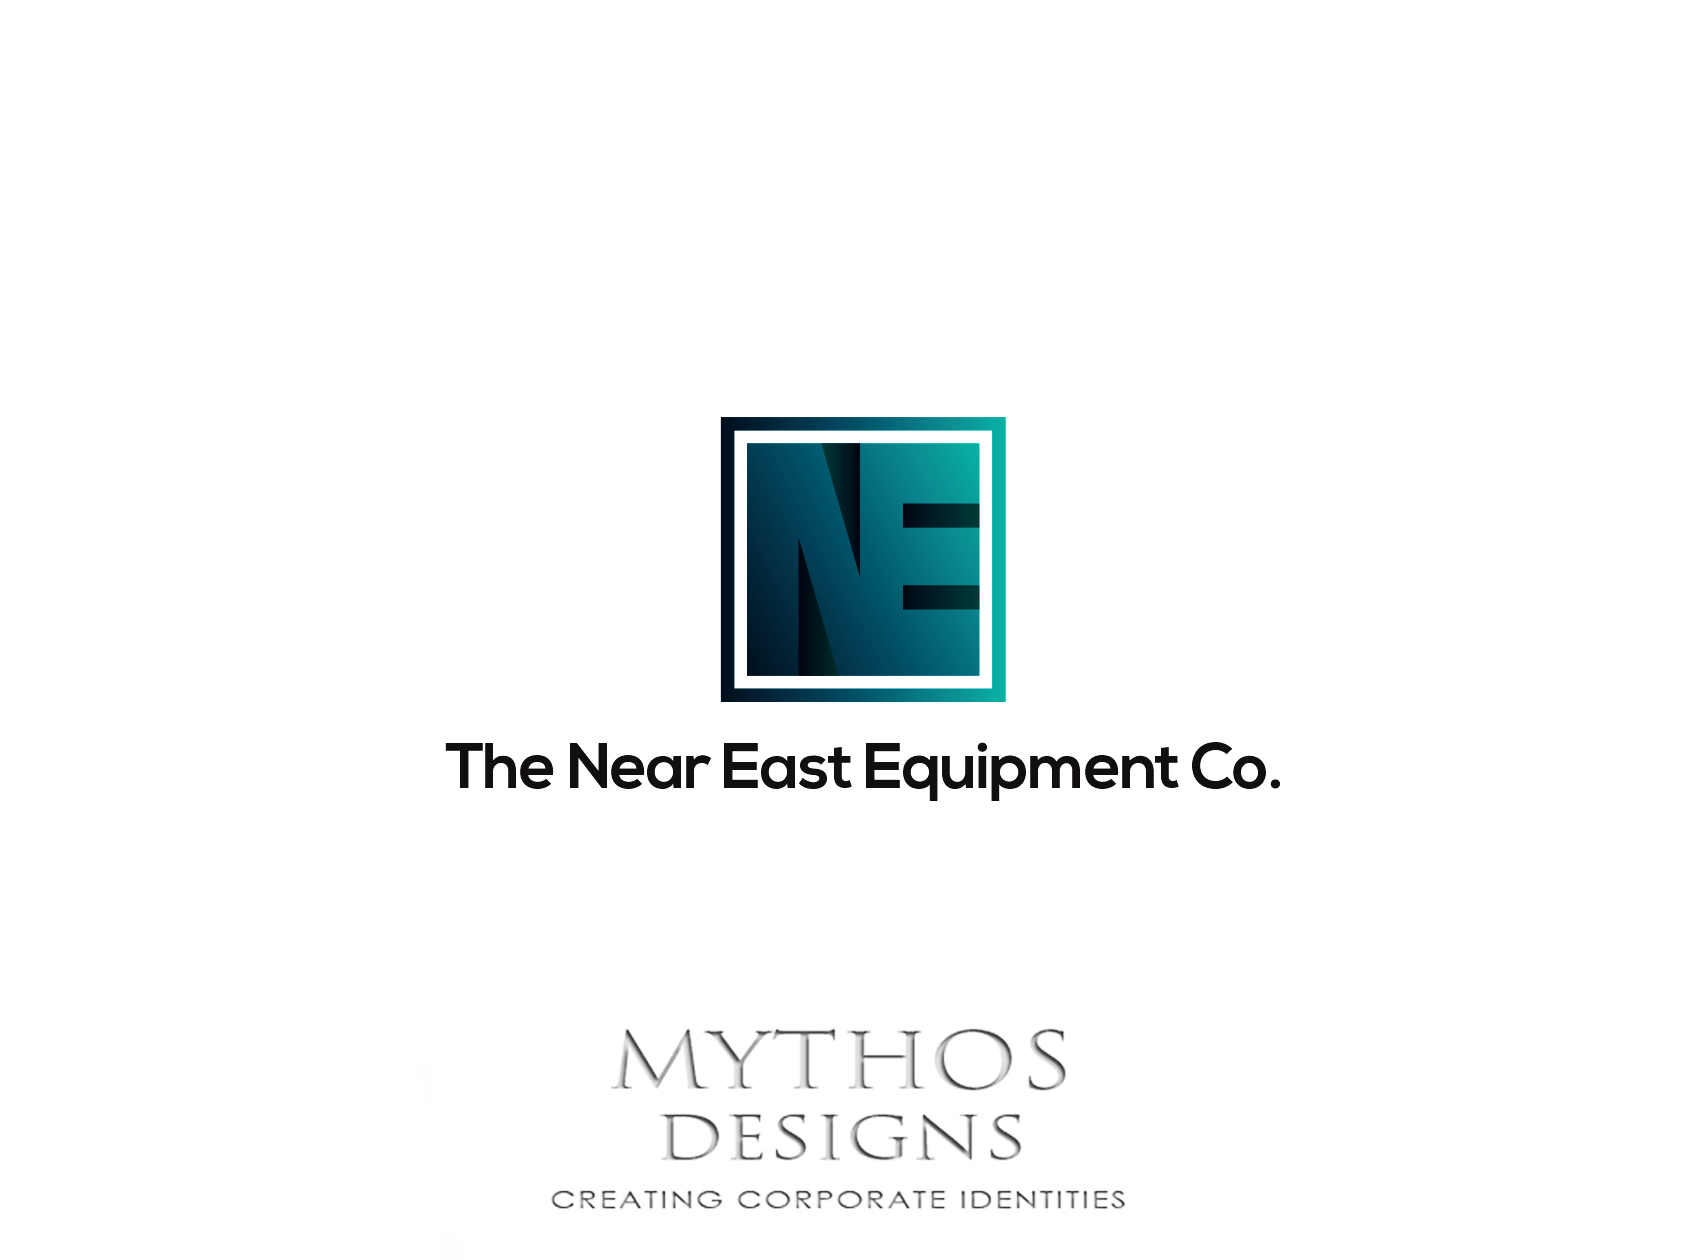 Logo Design by Mythos Designs - Entry No. 61 in the Logo Design Contest Imaginative Logo Design for The Near East Equipment Co..